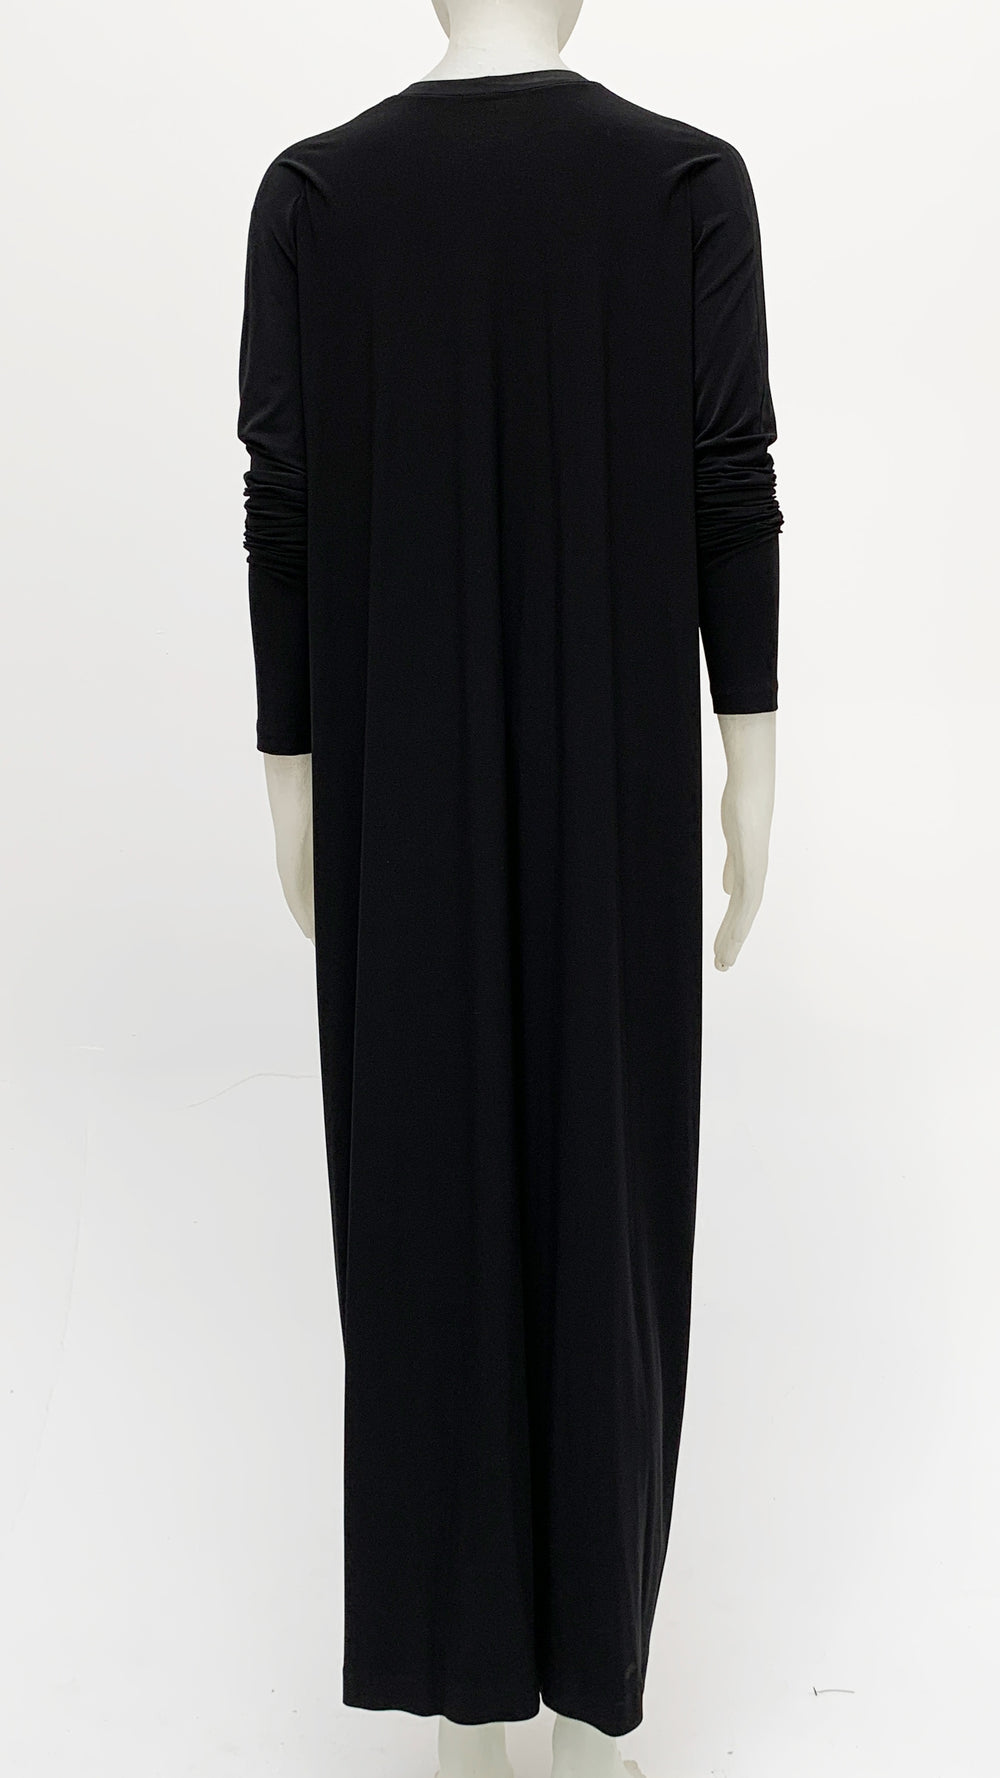 LONG SLEEVE FRONT TIE GOWN - 3